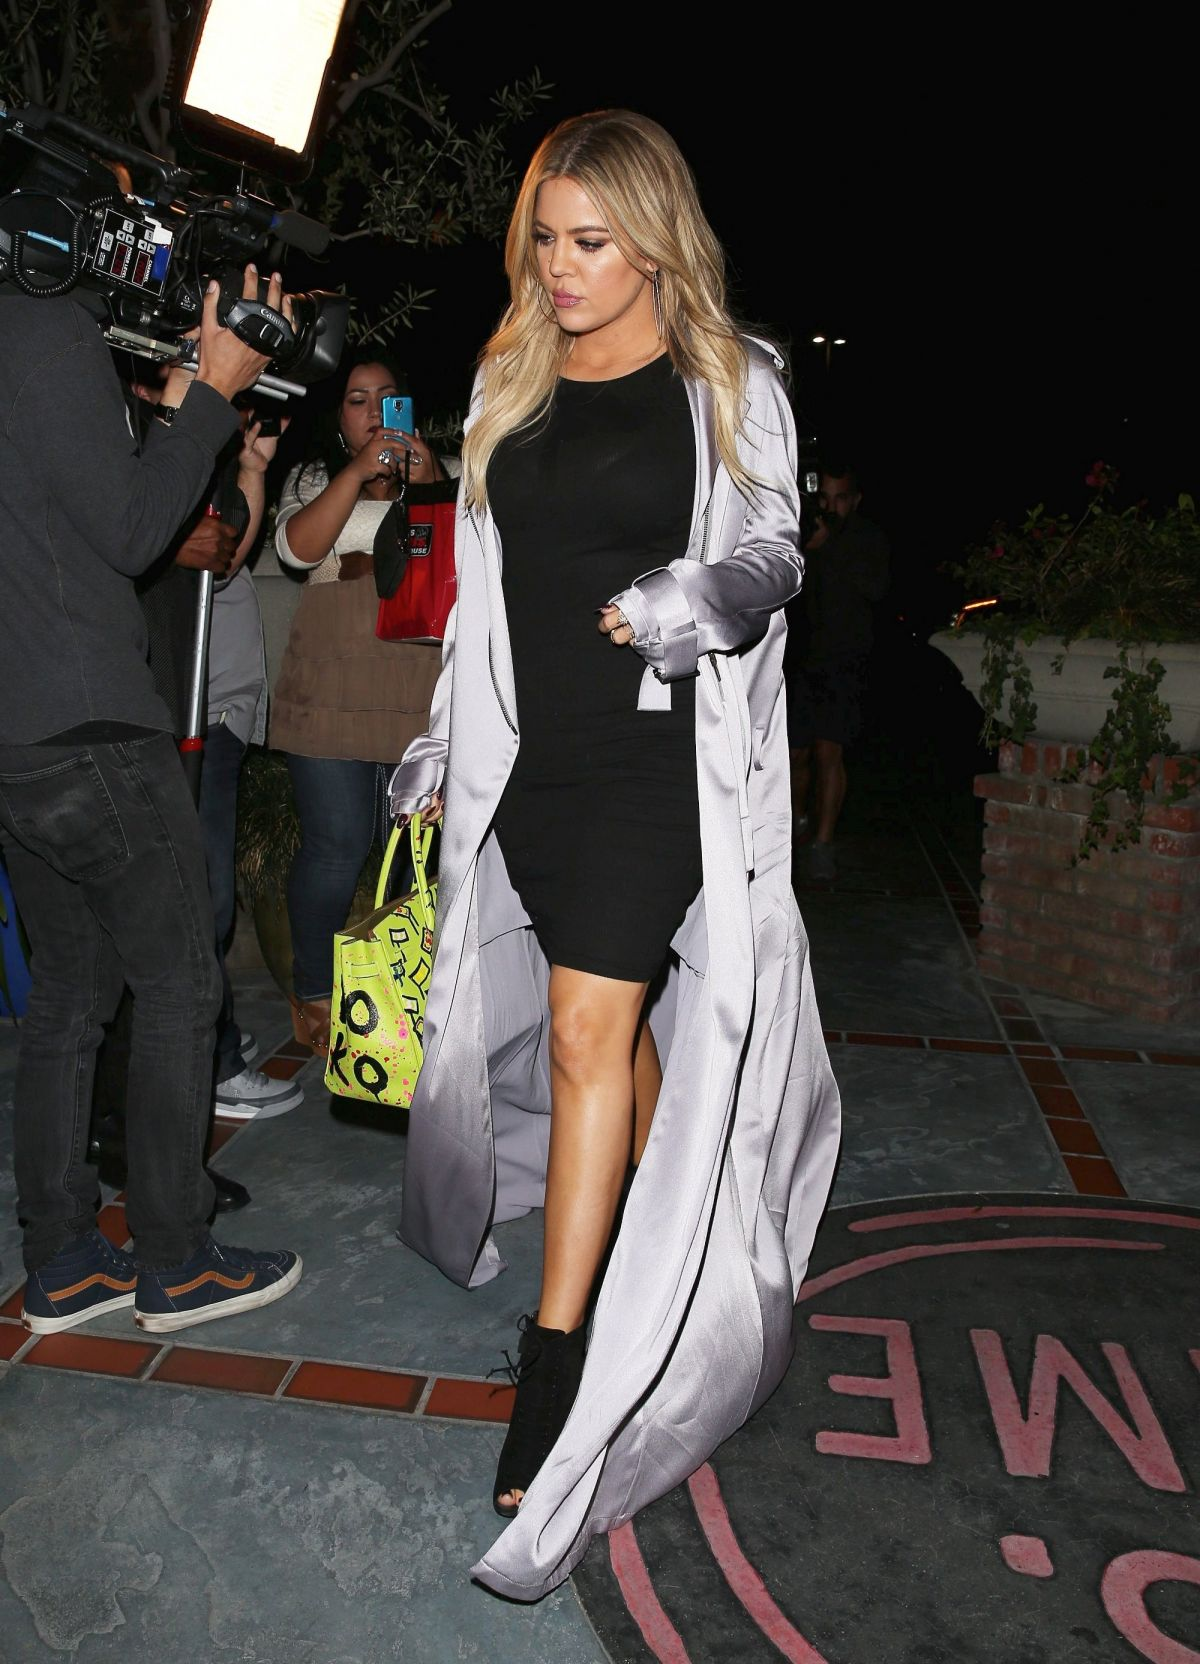 KHLOE KARDASHIAN Night Out in Los Angeles 05/16/2015